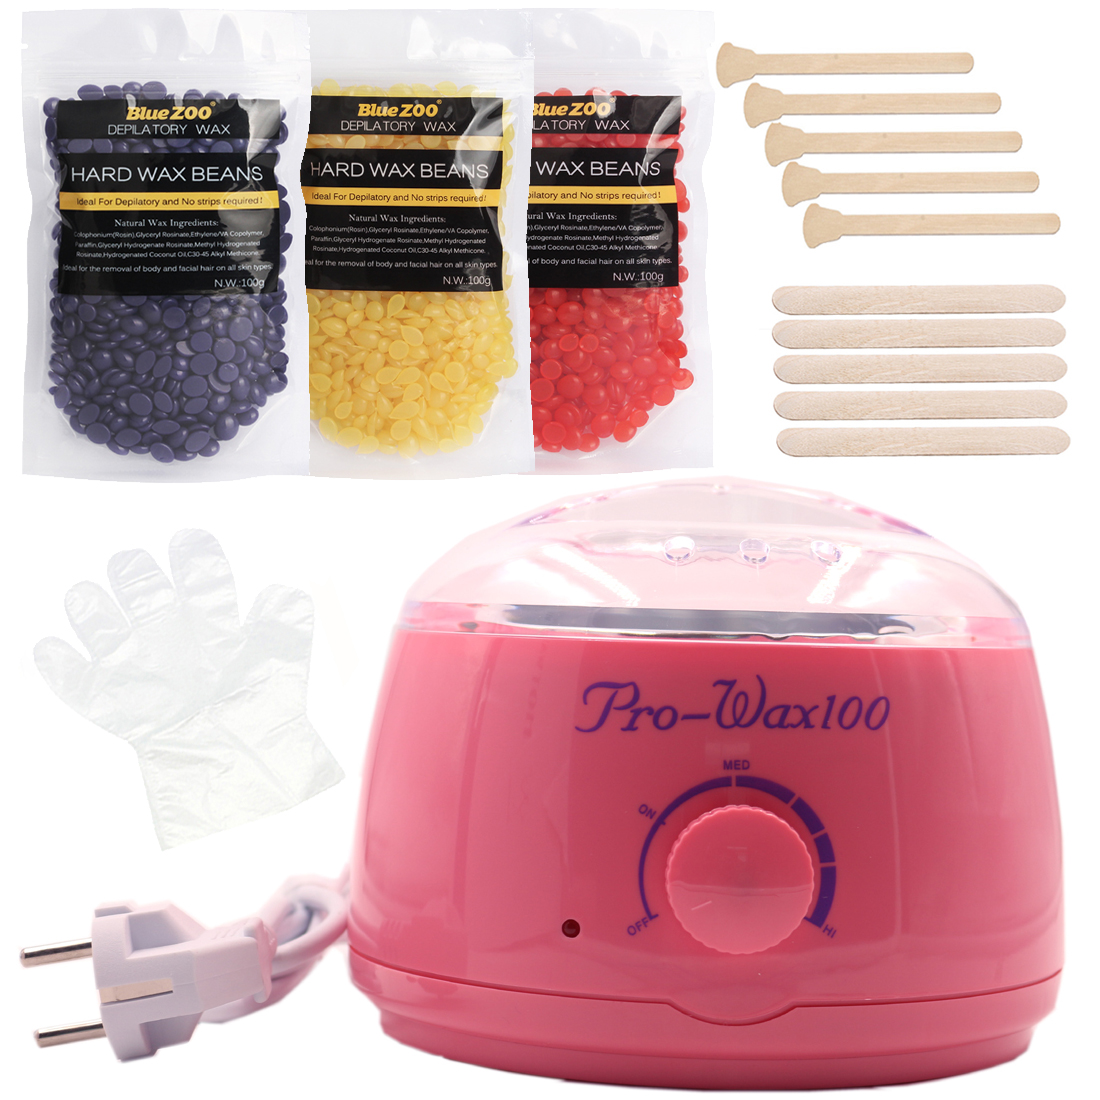 Brazilian Depilatory Wax Set Hot Hard Wax Beans Epilation Natural Pearl Wax Heater For Bikini Body And Face Hair Removal 400g hard wax chamomile flavor hot film wax beans brazilian hair removal cream body waxing epilation for beauty